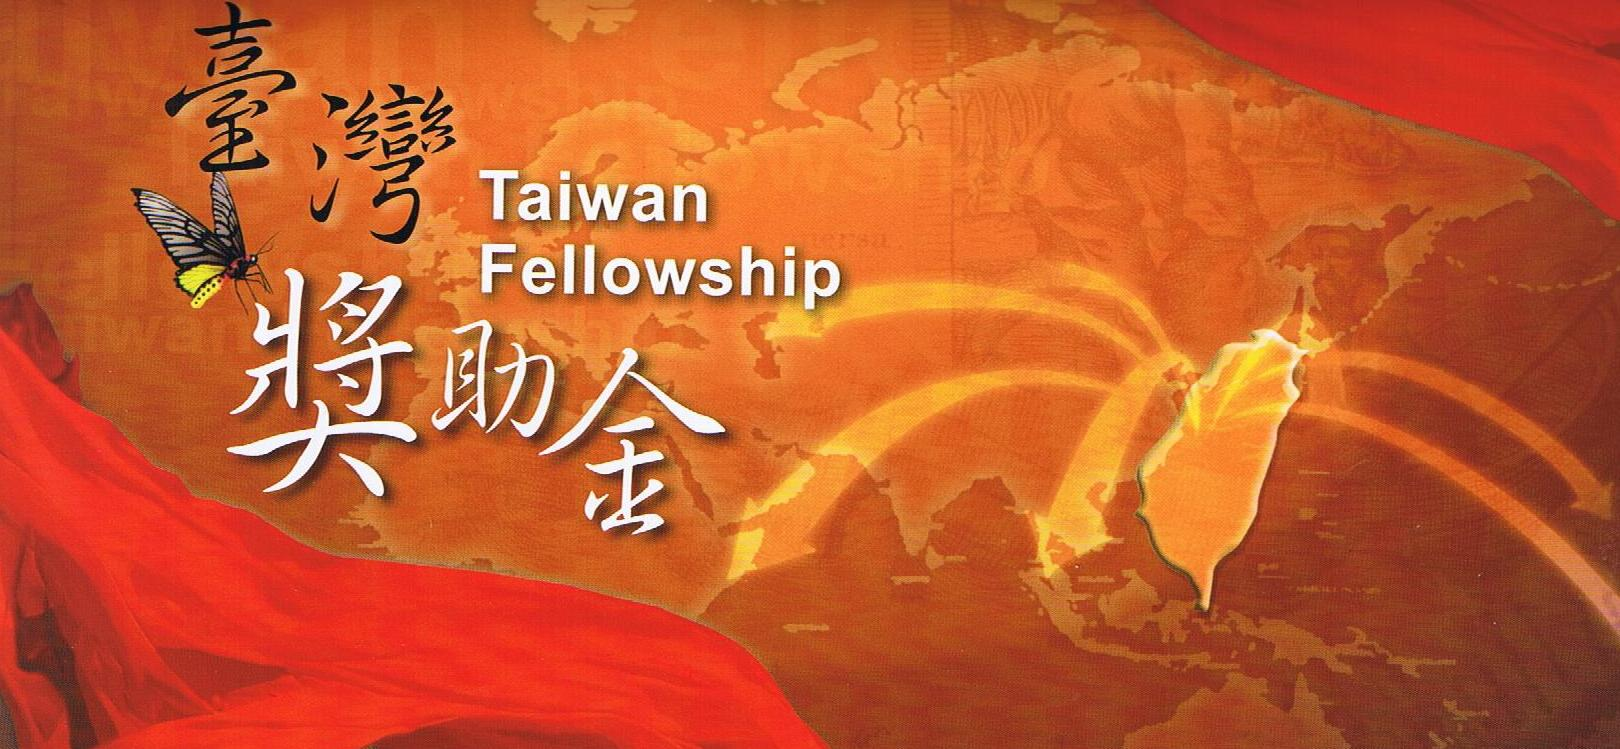 Ministry of Foreign Affairs (MOFA) Taiwan Fellowship 2019 for Researchers (Funding available)